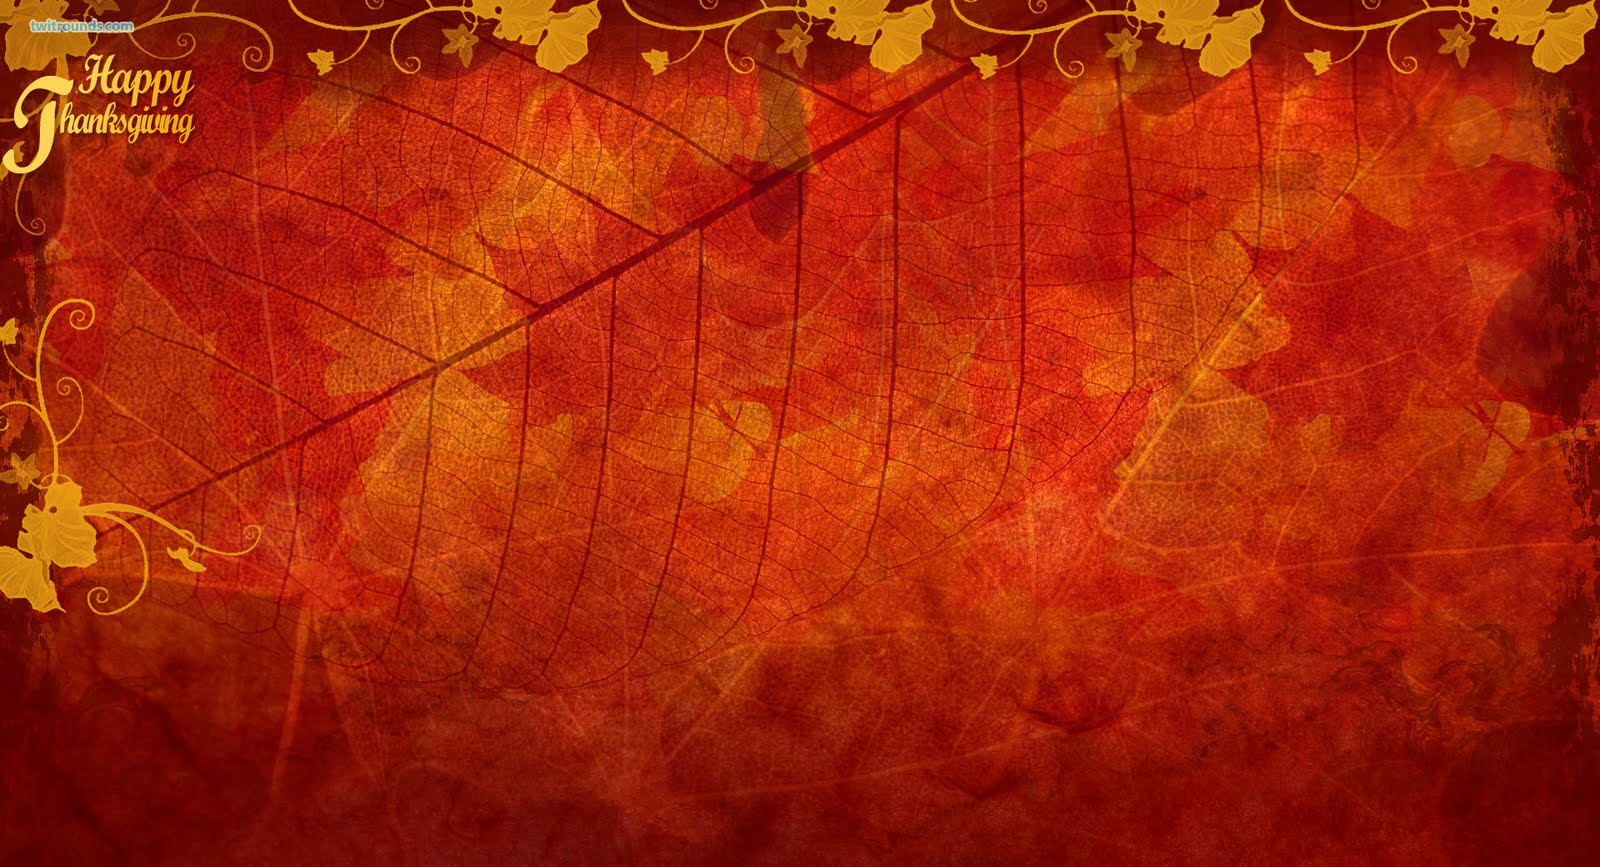 Powerpoint Thanksgiving Background Powerpoint Backgrounds